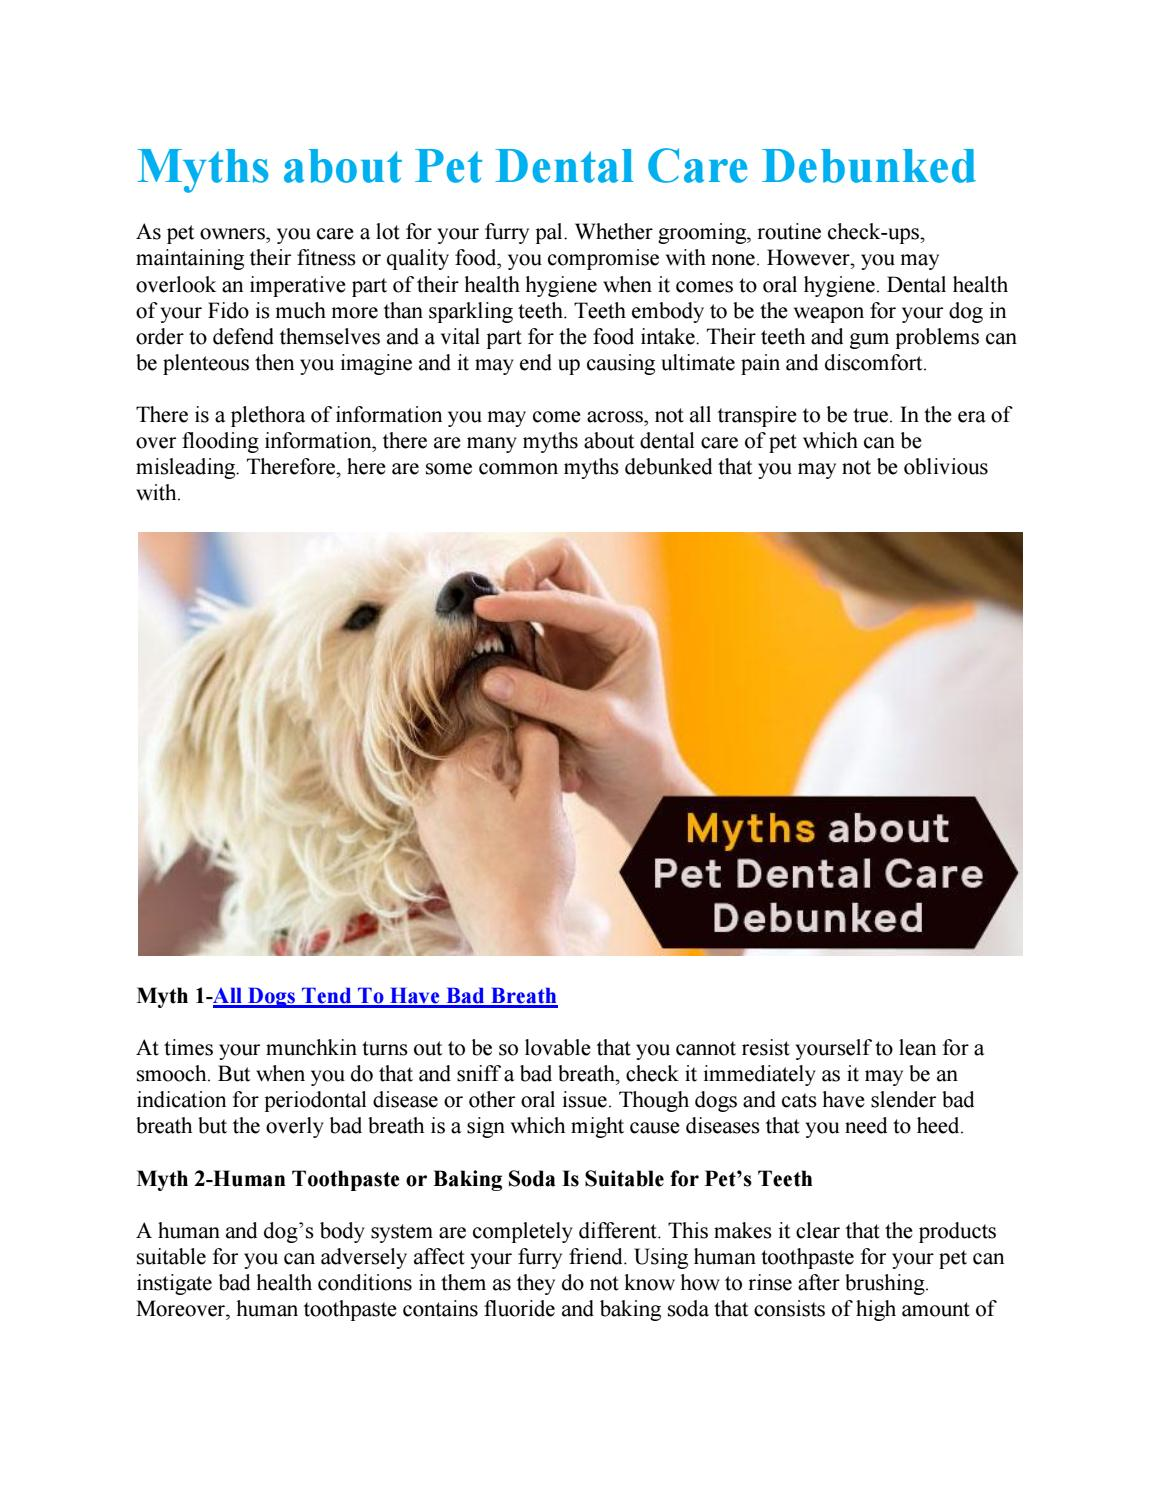 Myths about Pet Dental Care Debunked by VetSupply - issuu